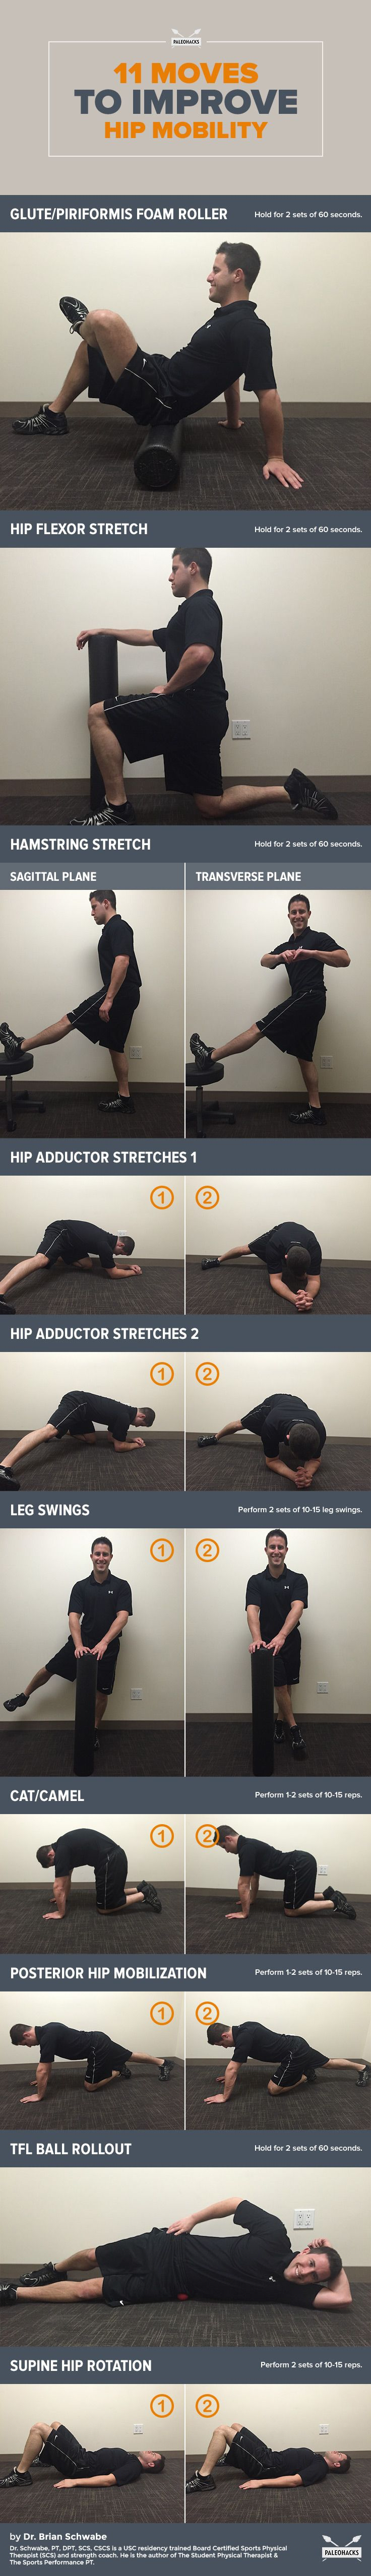 Undo the damage of sitting with these smooth moves!